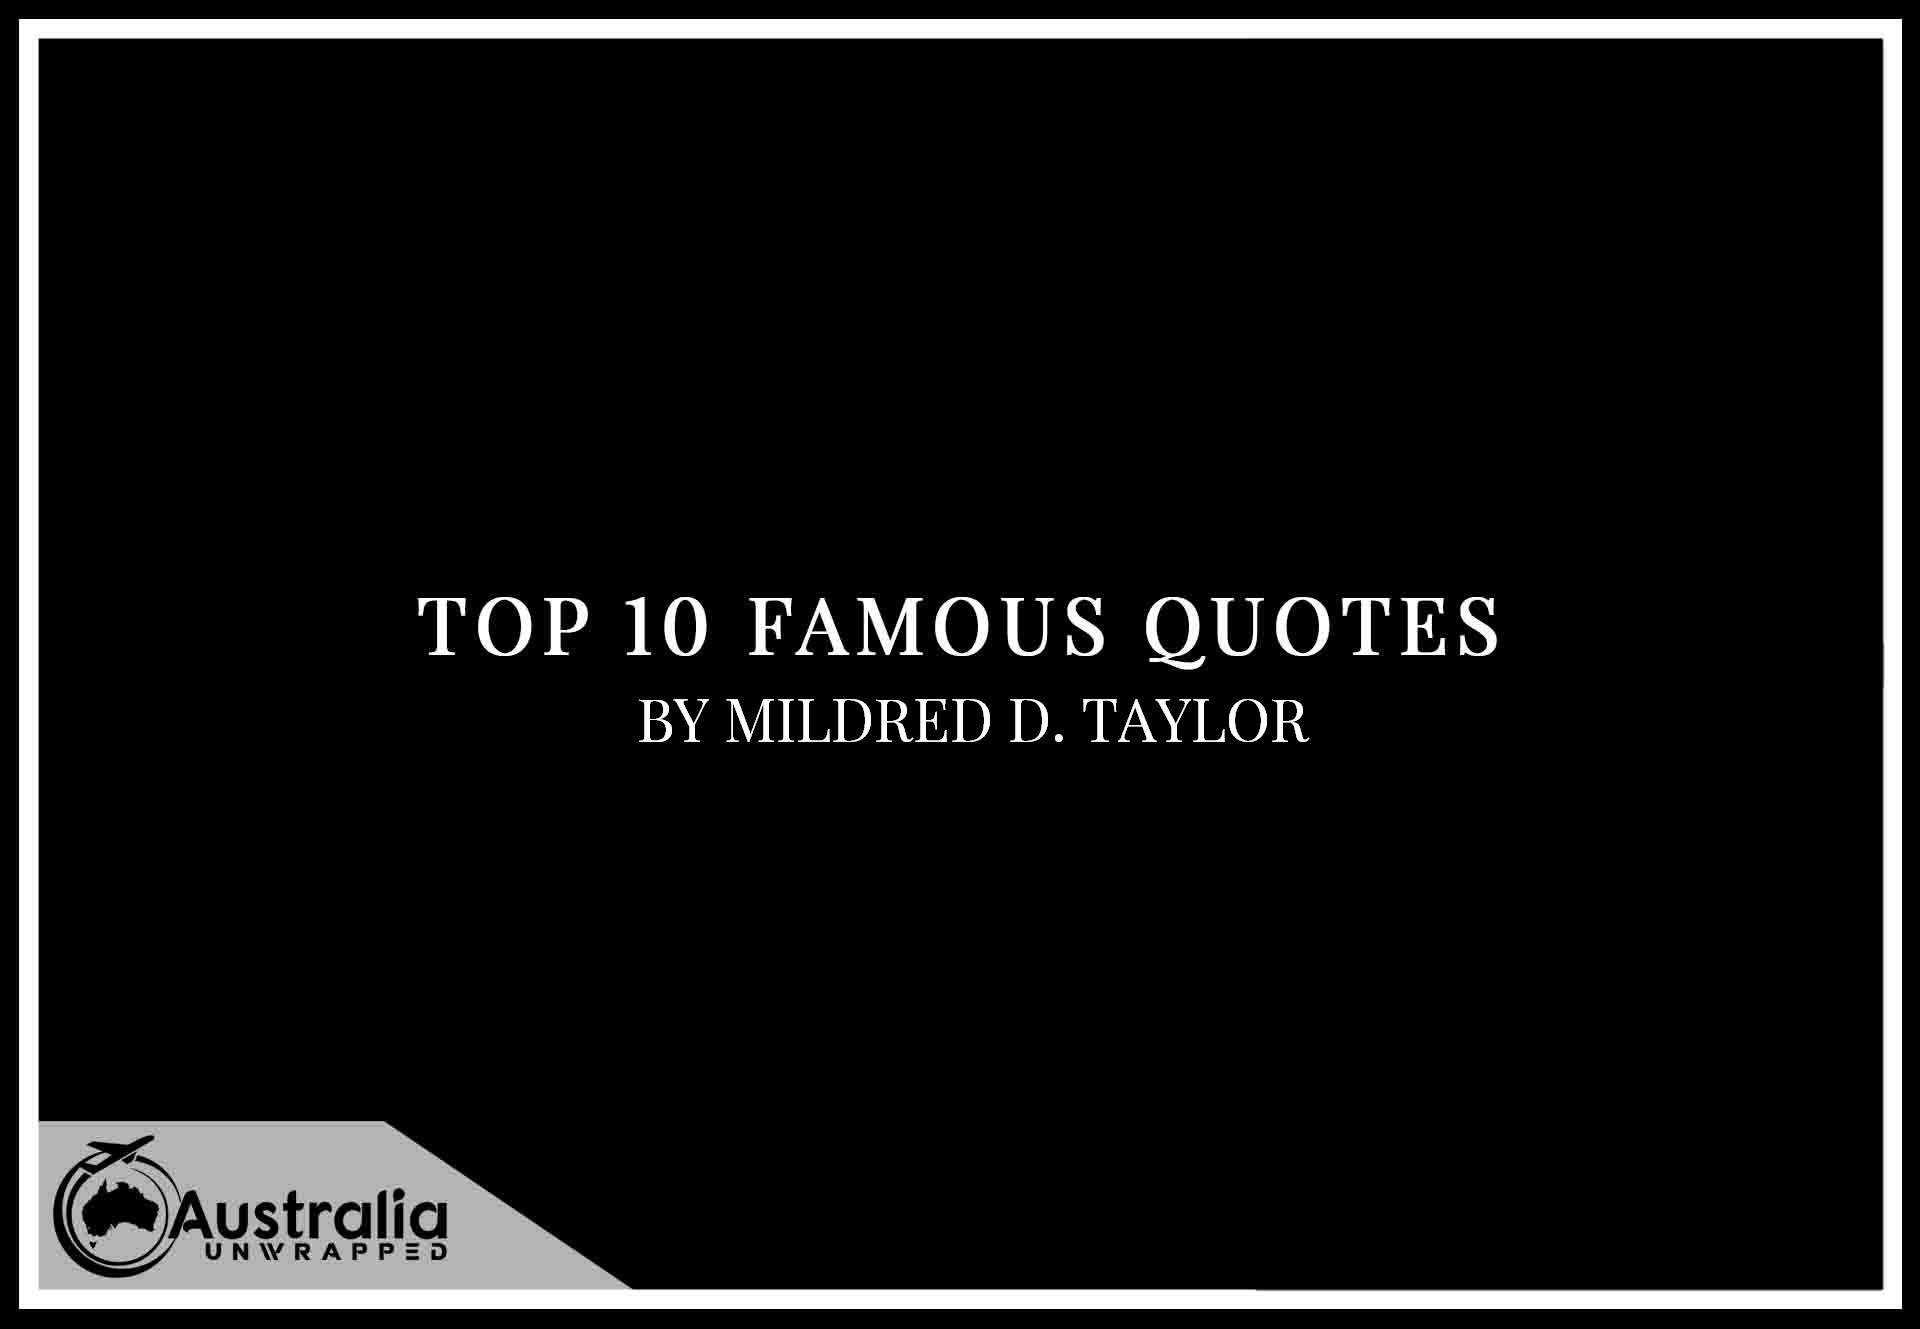 Top 10 Famous Quotes by Author Mildred D. Taylor